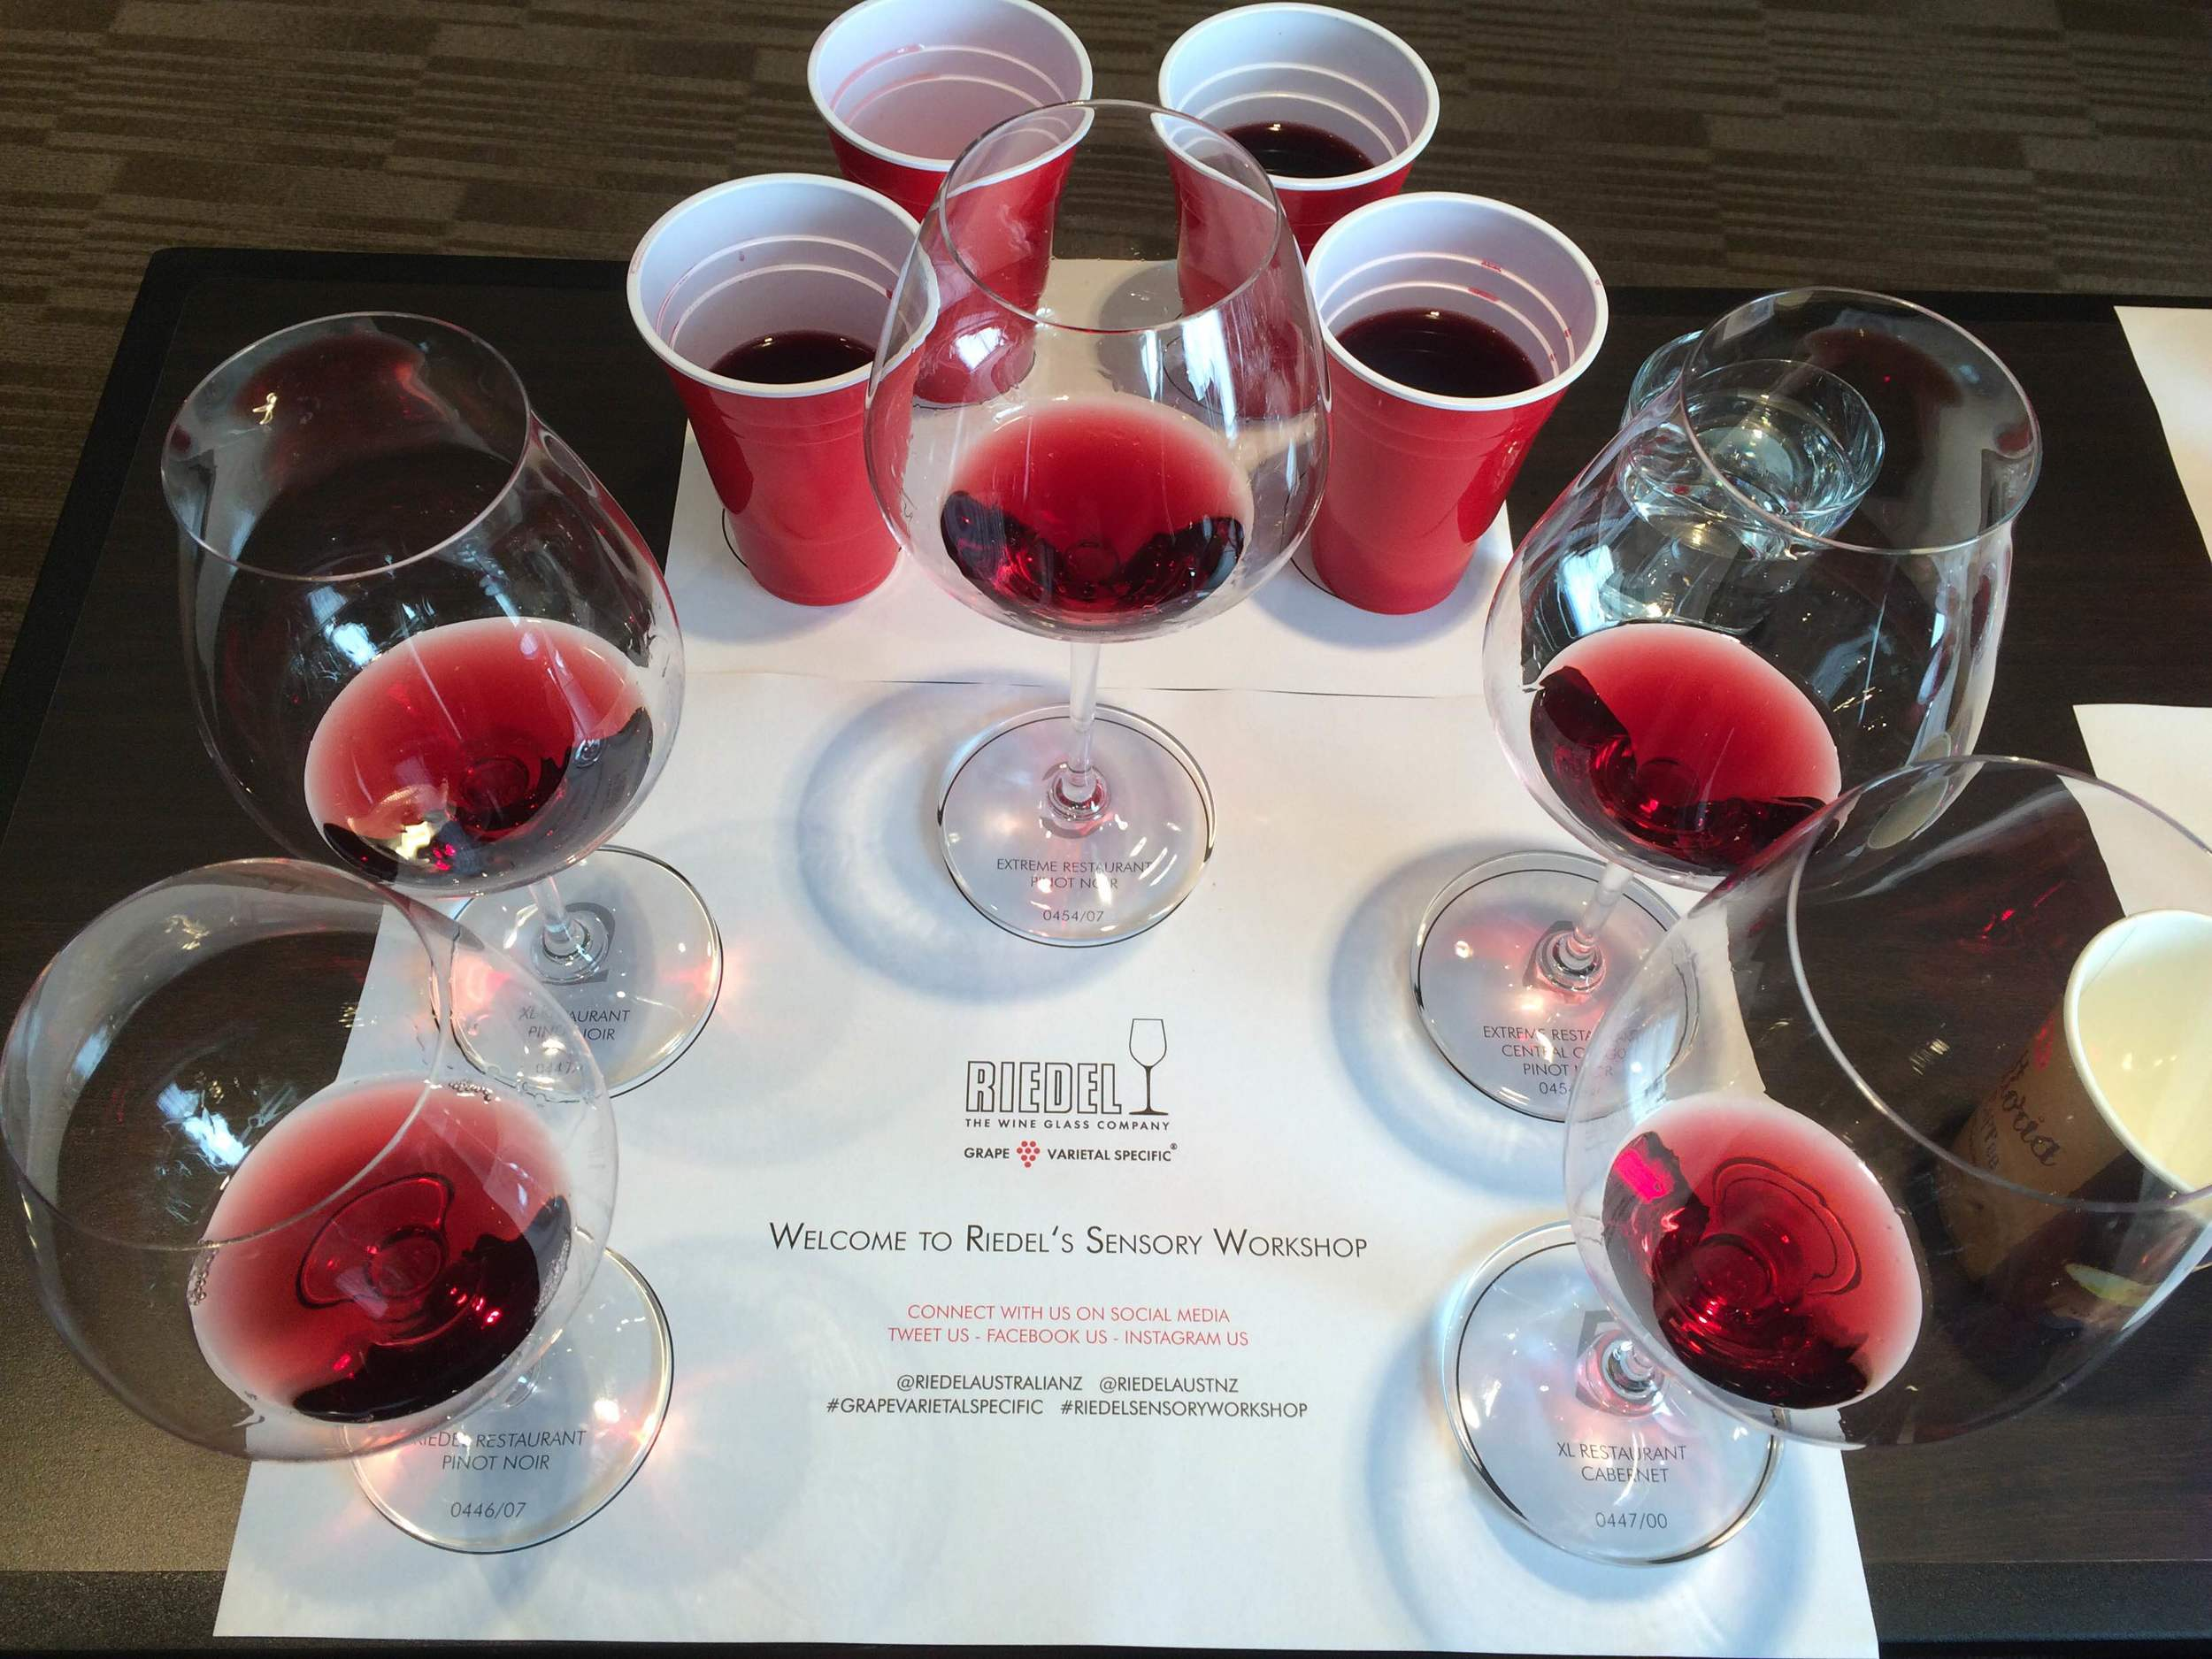 Five Riedel tasting glasses, with #1 on the left.